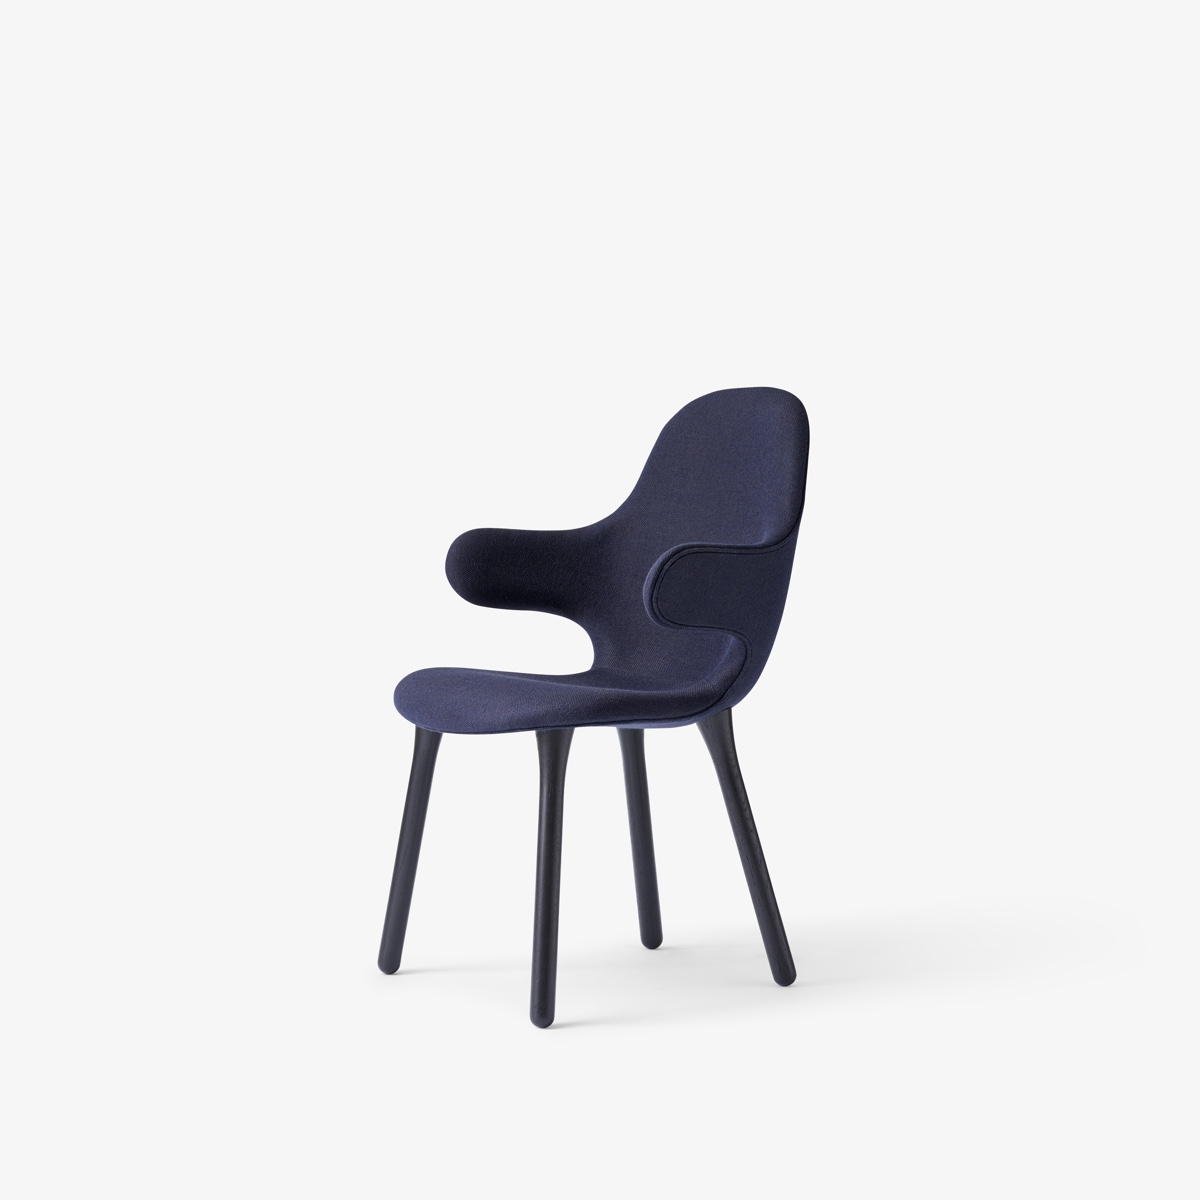 The Catch Chair by Jaime Hayon for &Tradition welcomes the sitter with outstretched and open arms, flaunting Hayon's distinctively playful approach to design. The Catch Chair is pictured in dark blue. Image courtesy of &tradition.